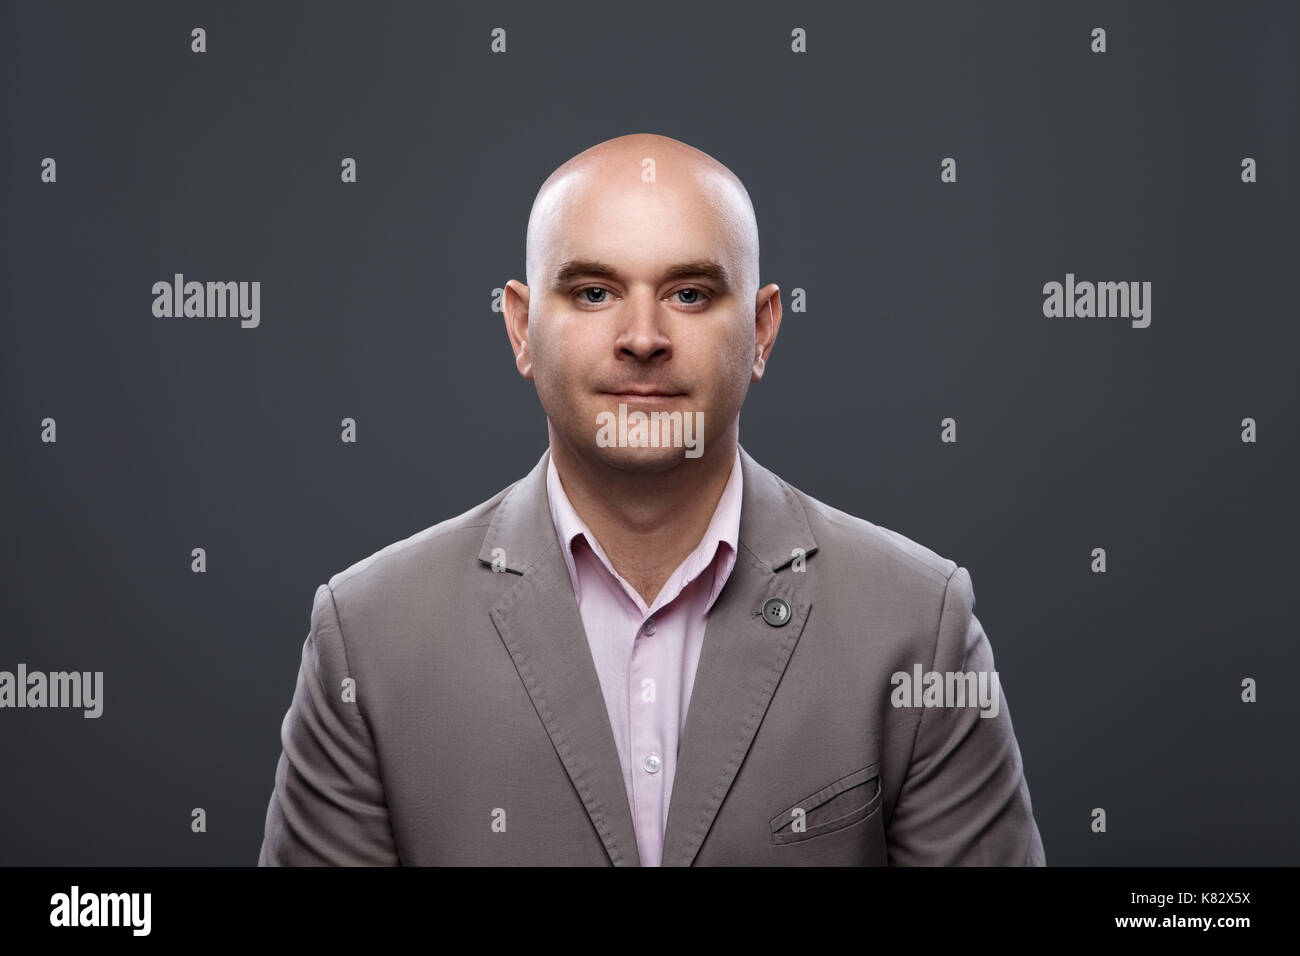 Portrait of a bald affable man in a suit against a dark background, studio shot. - Stock Image